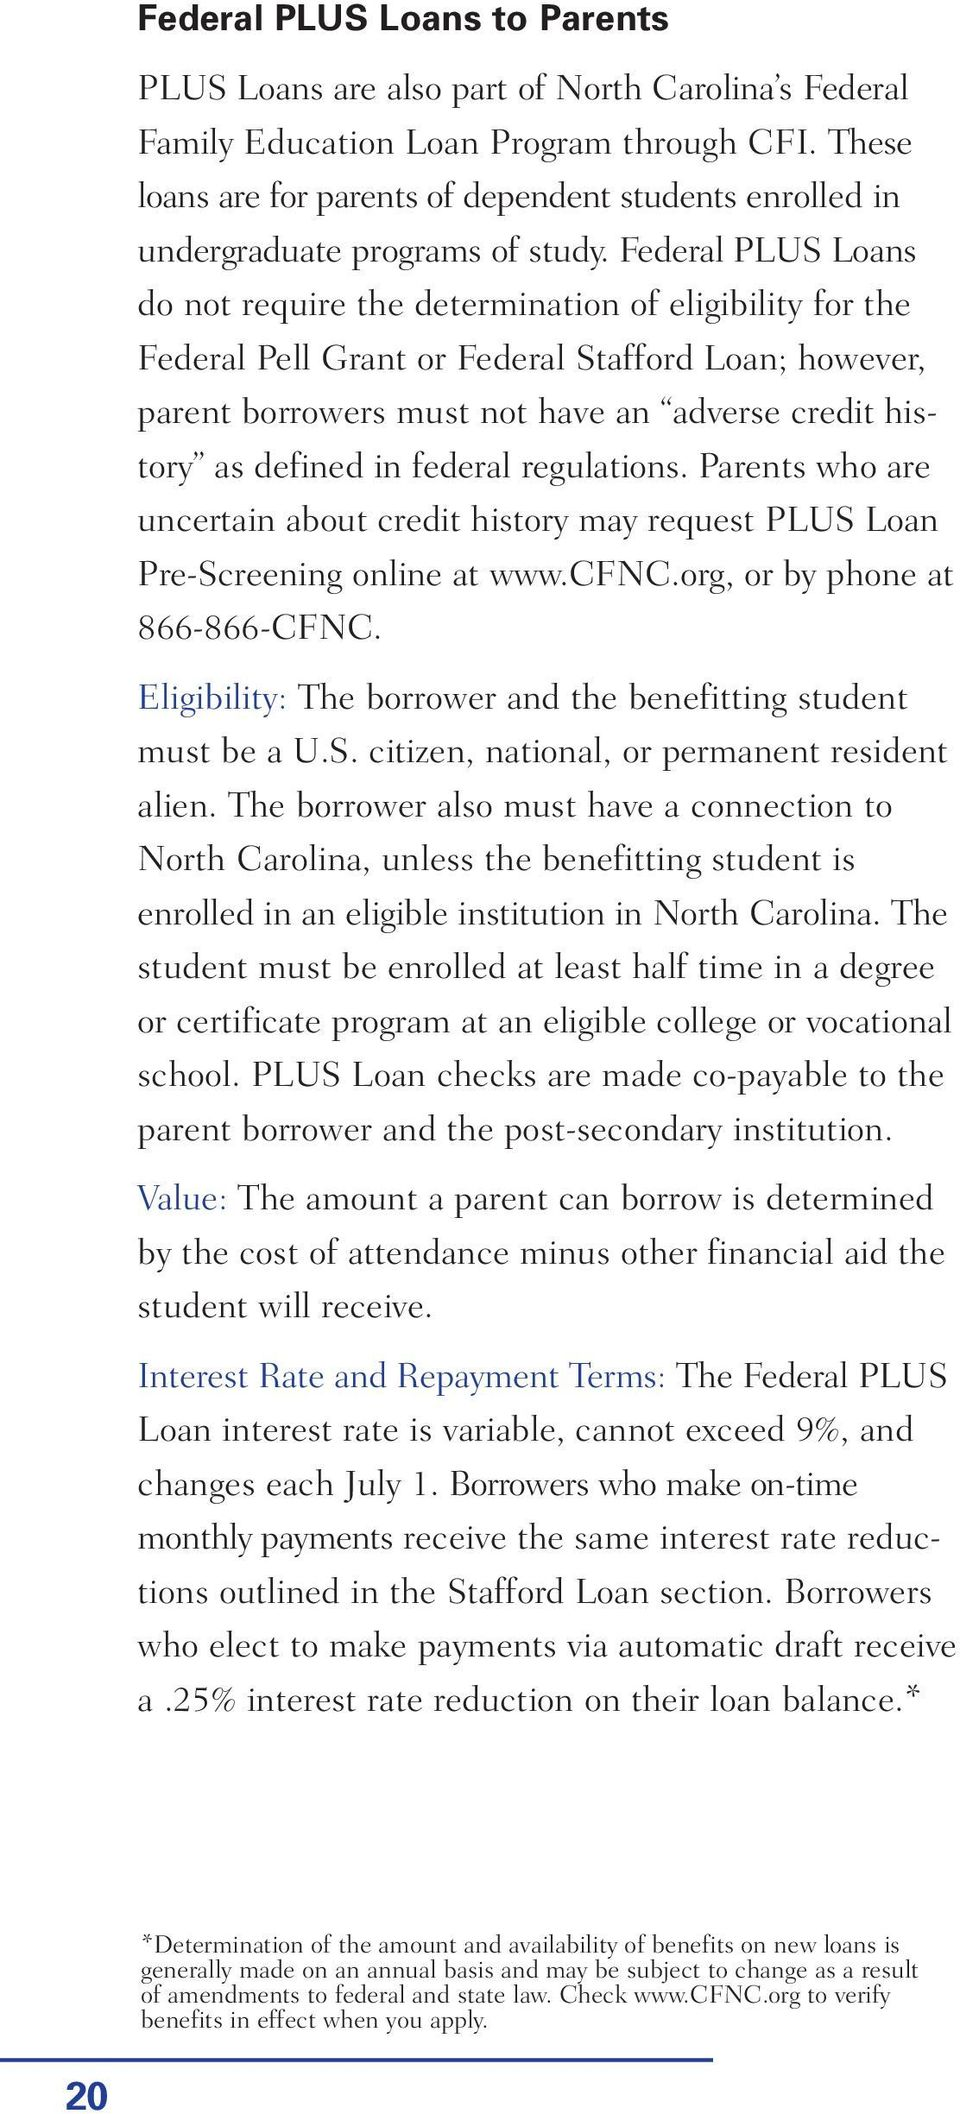 Federal PLUS Loans do not require the determination of eligibility for the Federal Pell Grant or Federal Stafford Loan; however, parent borrowers must not have an adverse credit history as defined in